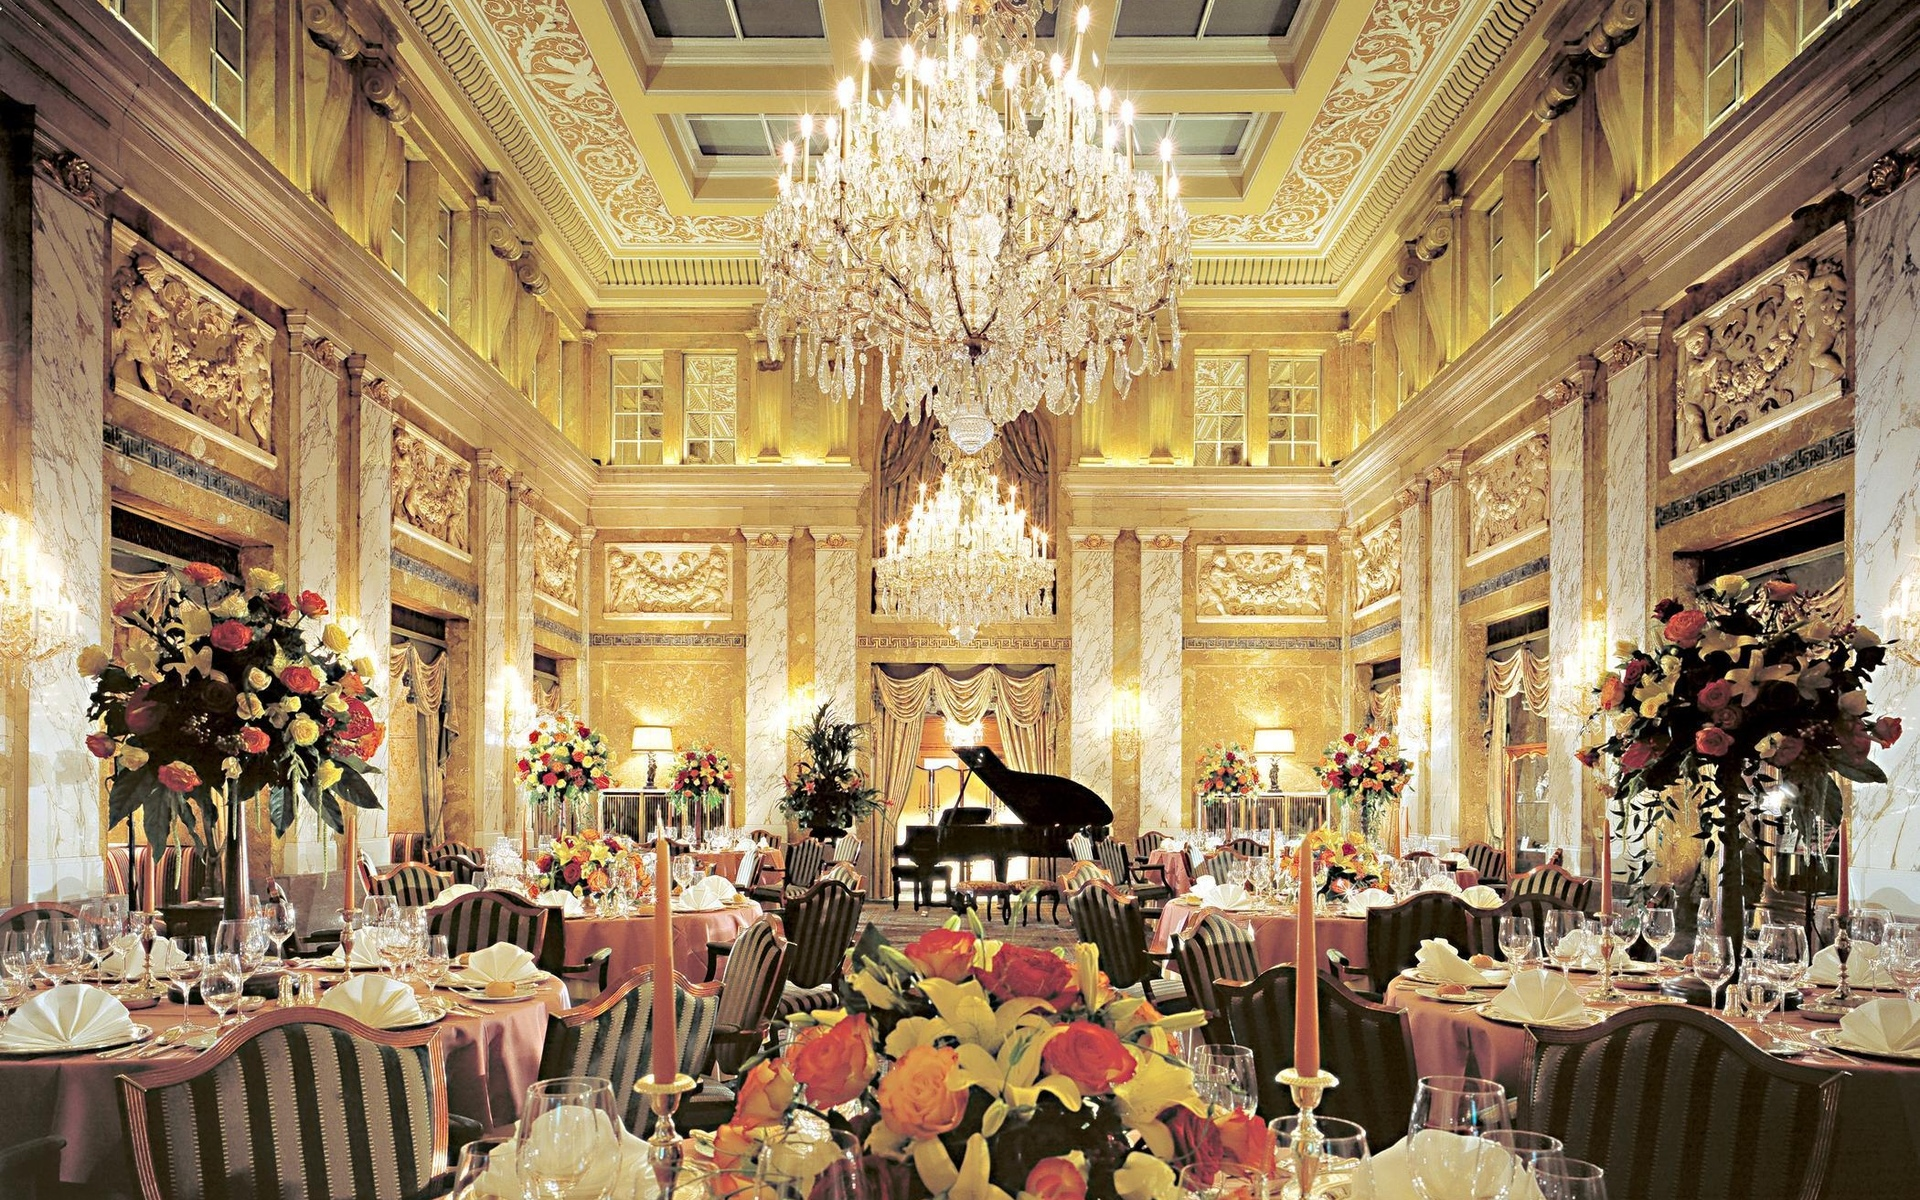 world architecture room furniture dinner ball Chandelier cups ornate detail classic photography chair flowers lights lamps door